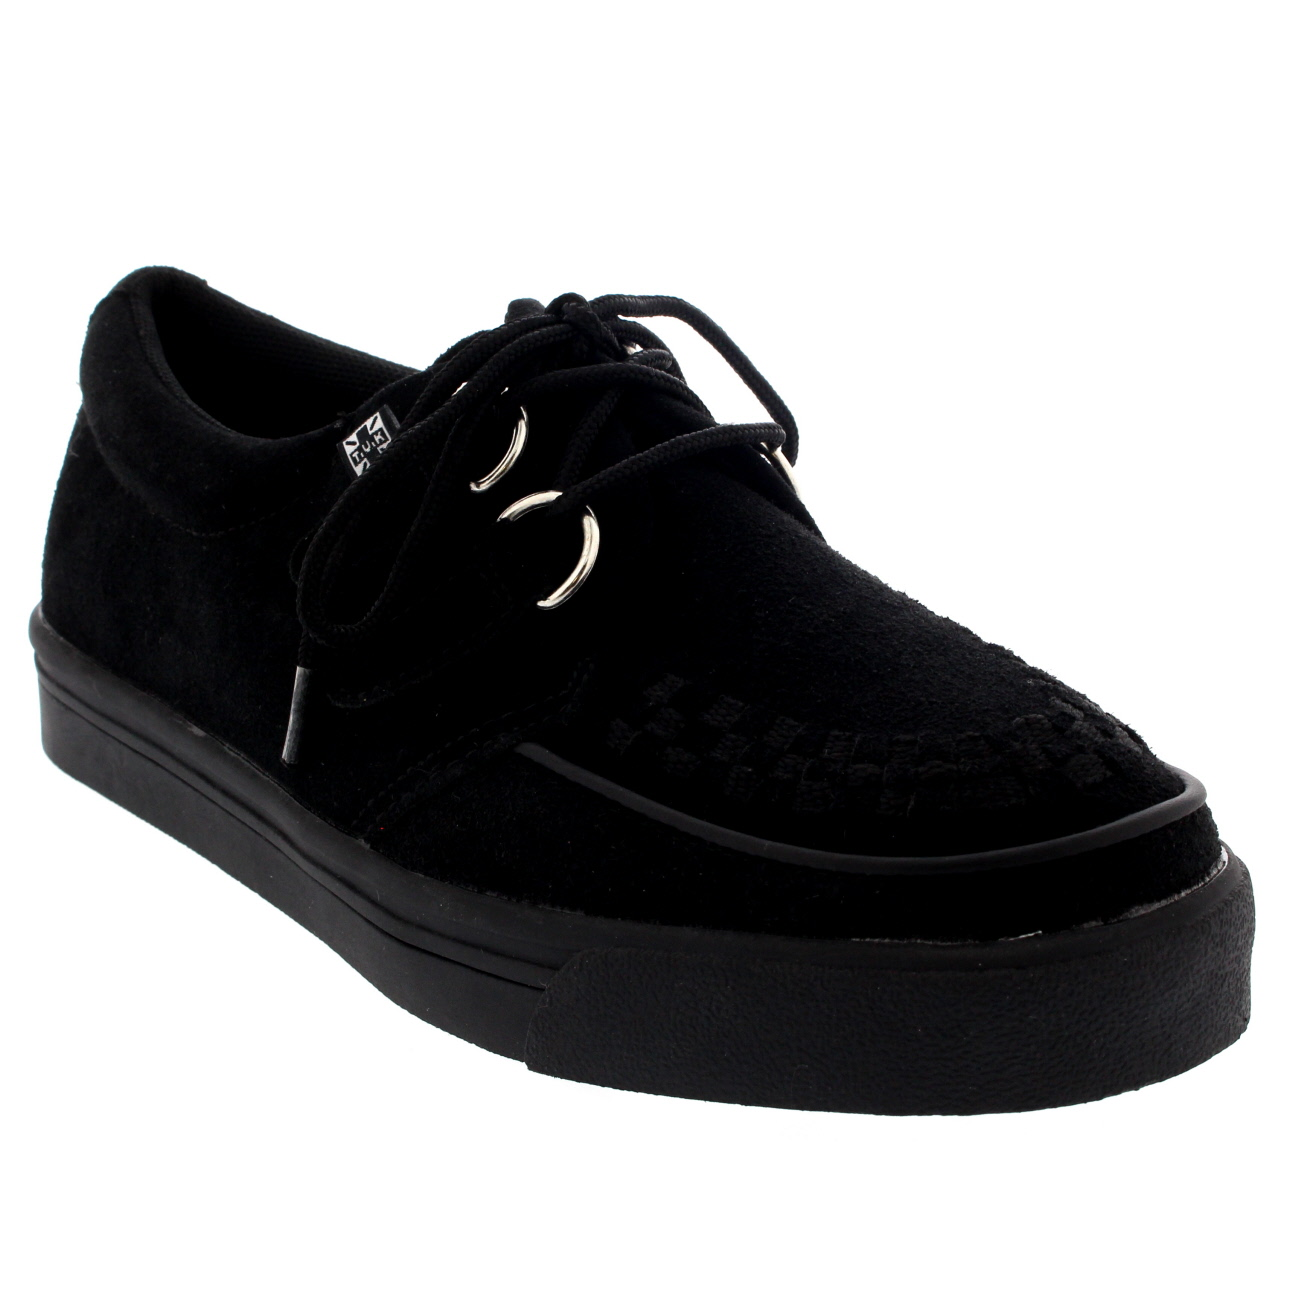 T.U.K Creeper Sneaker Originals Suede